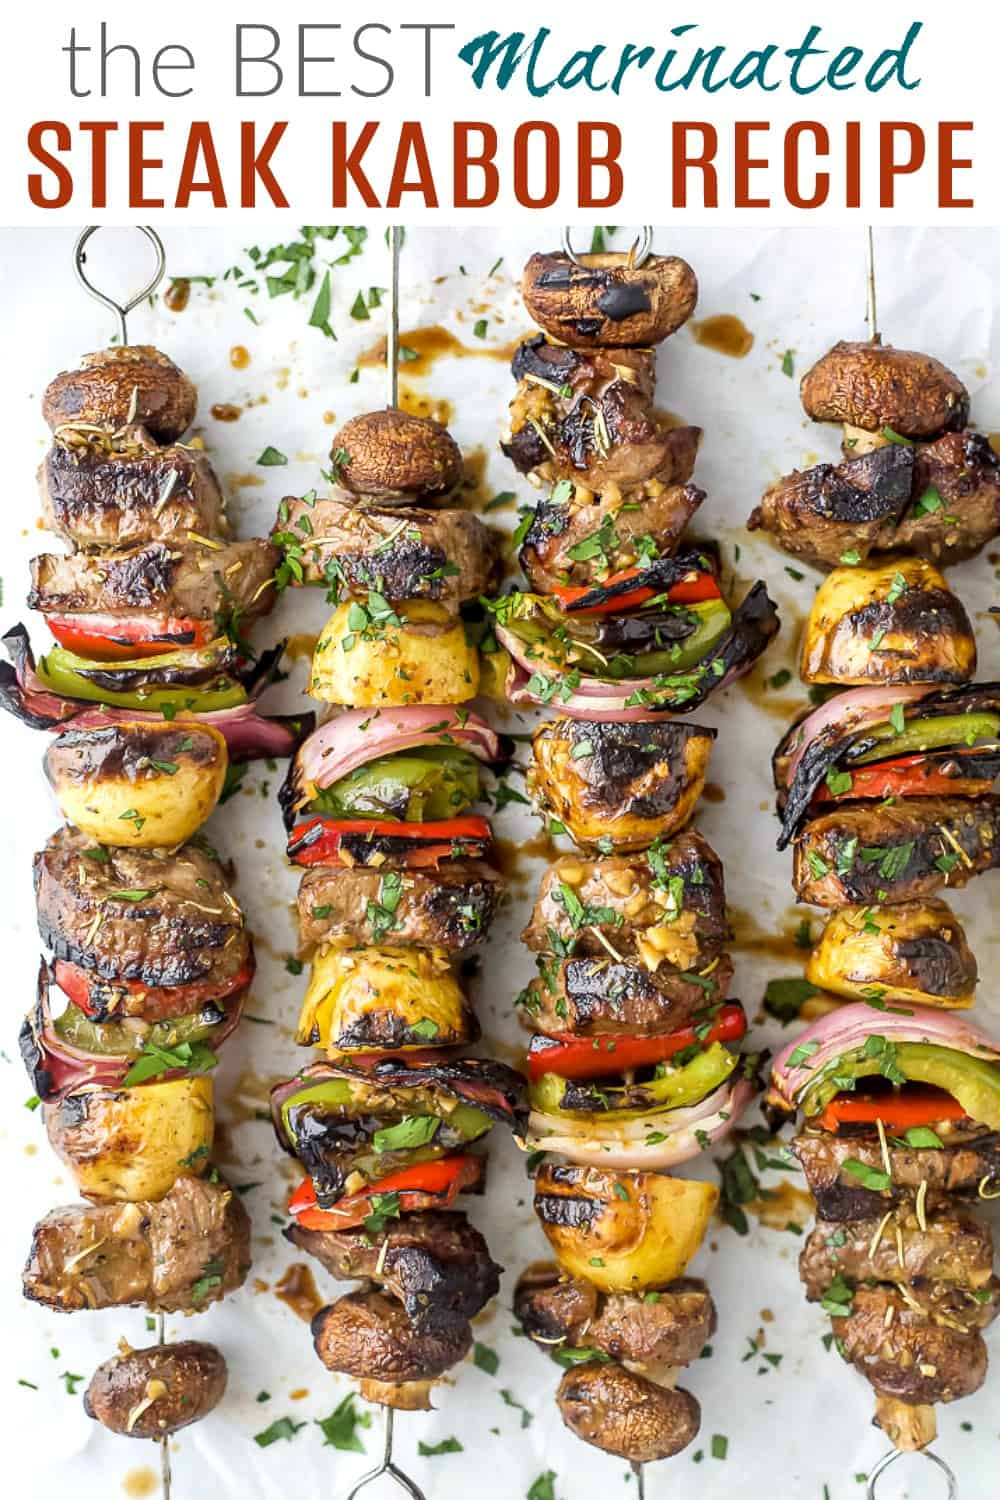 pinterest image for the best marinated steak kabob recipe